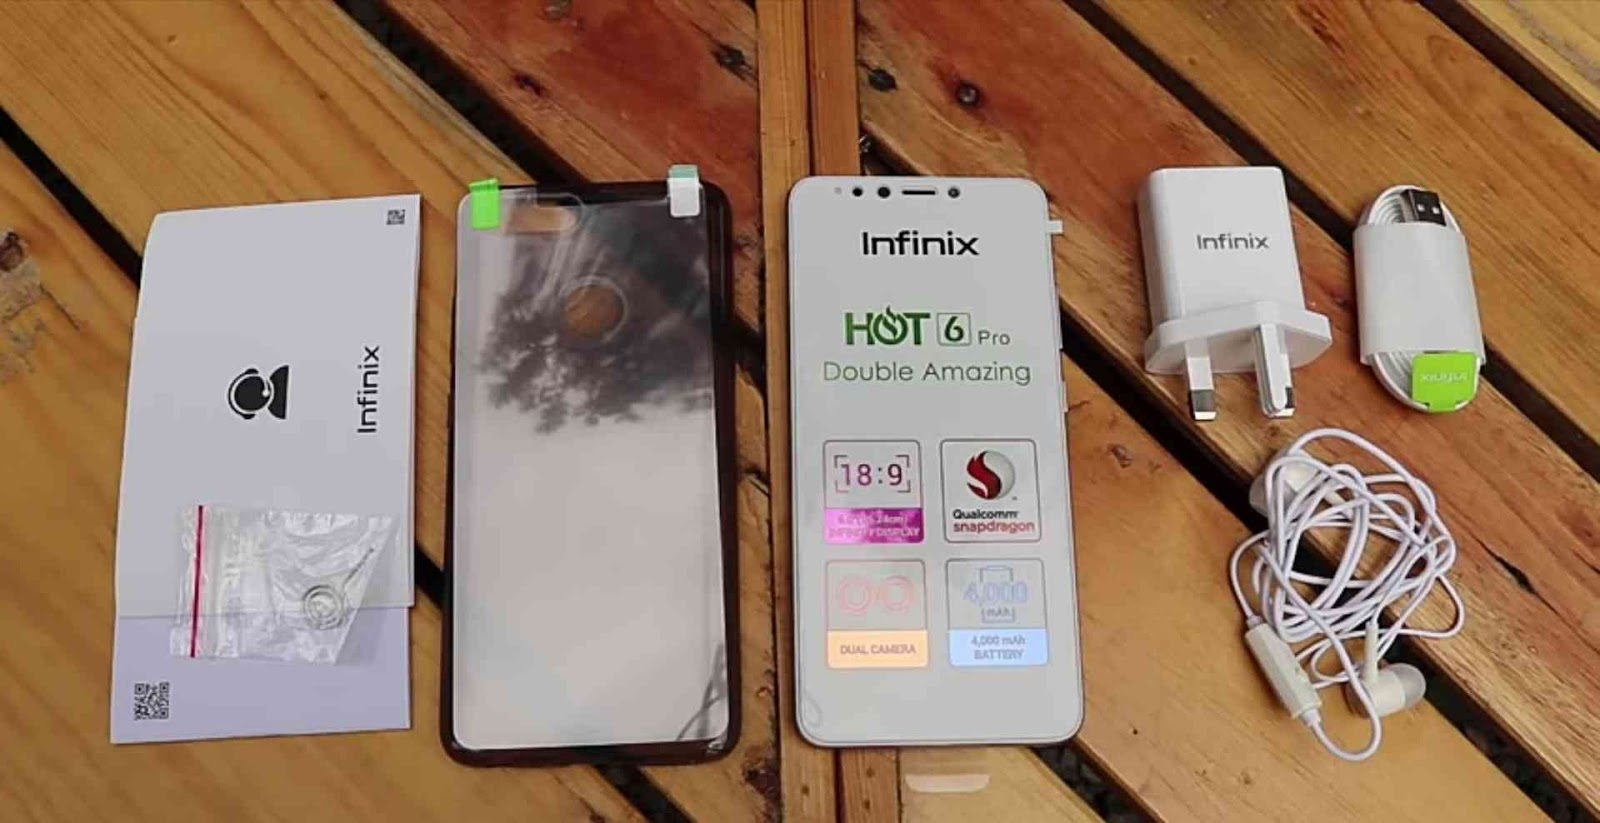 Accessories display of the Infinix Hot 6 Pro